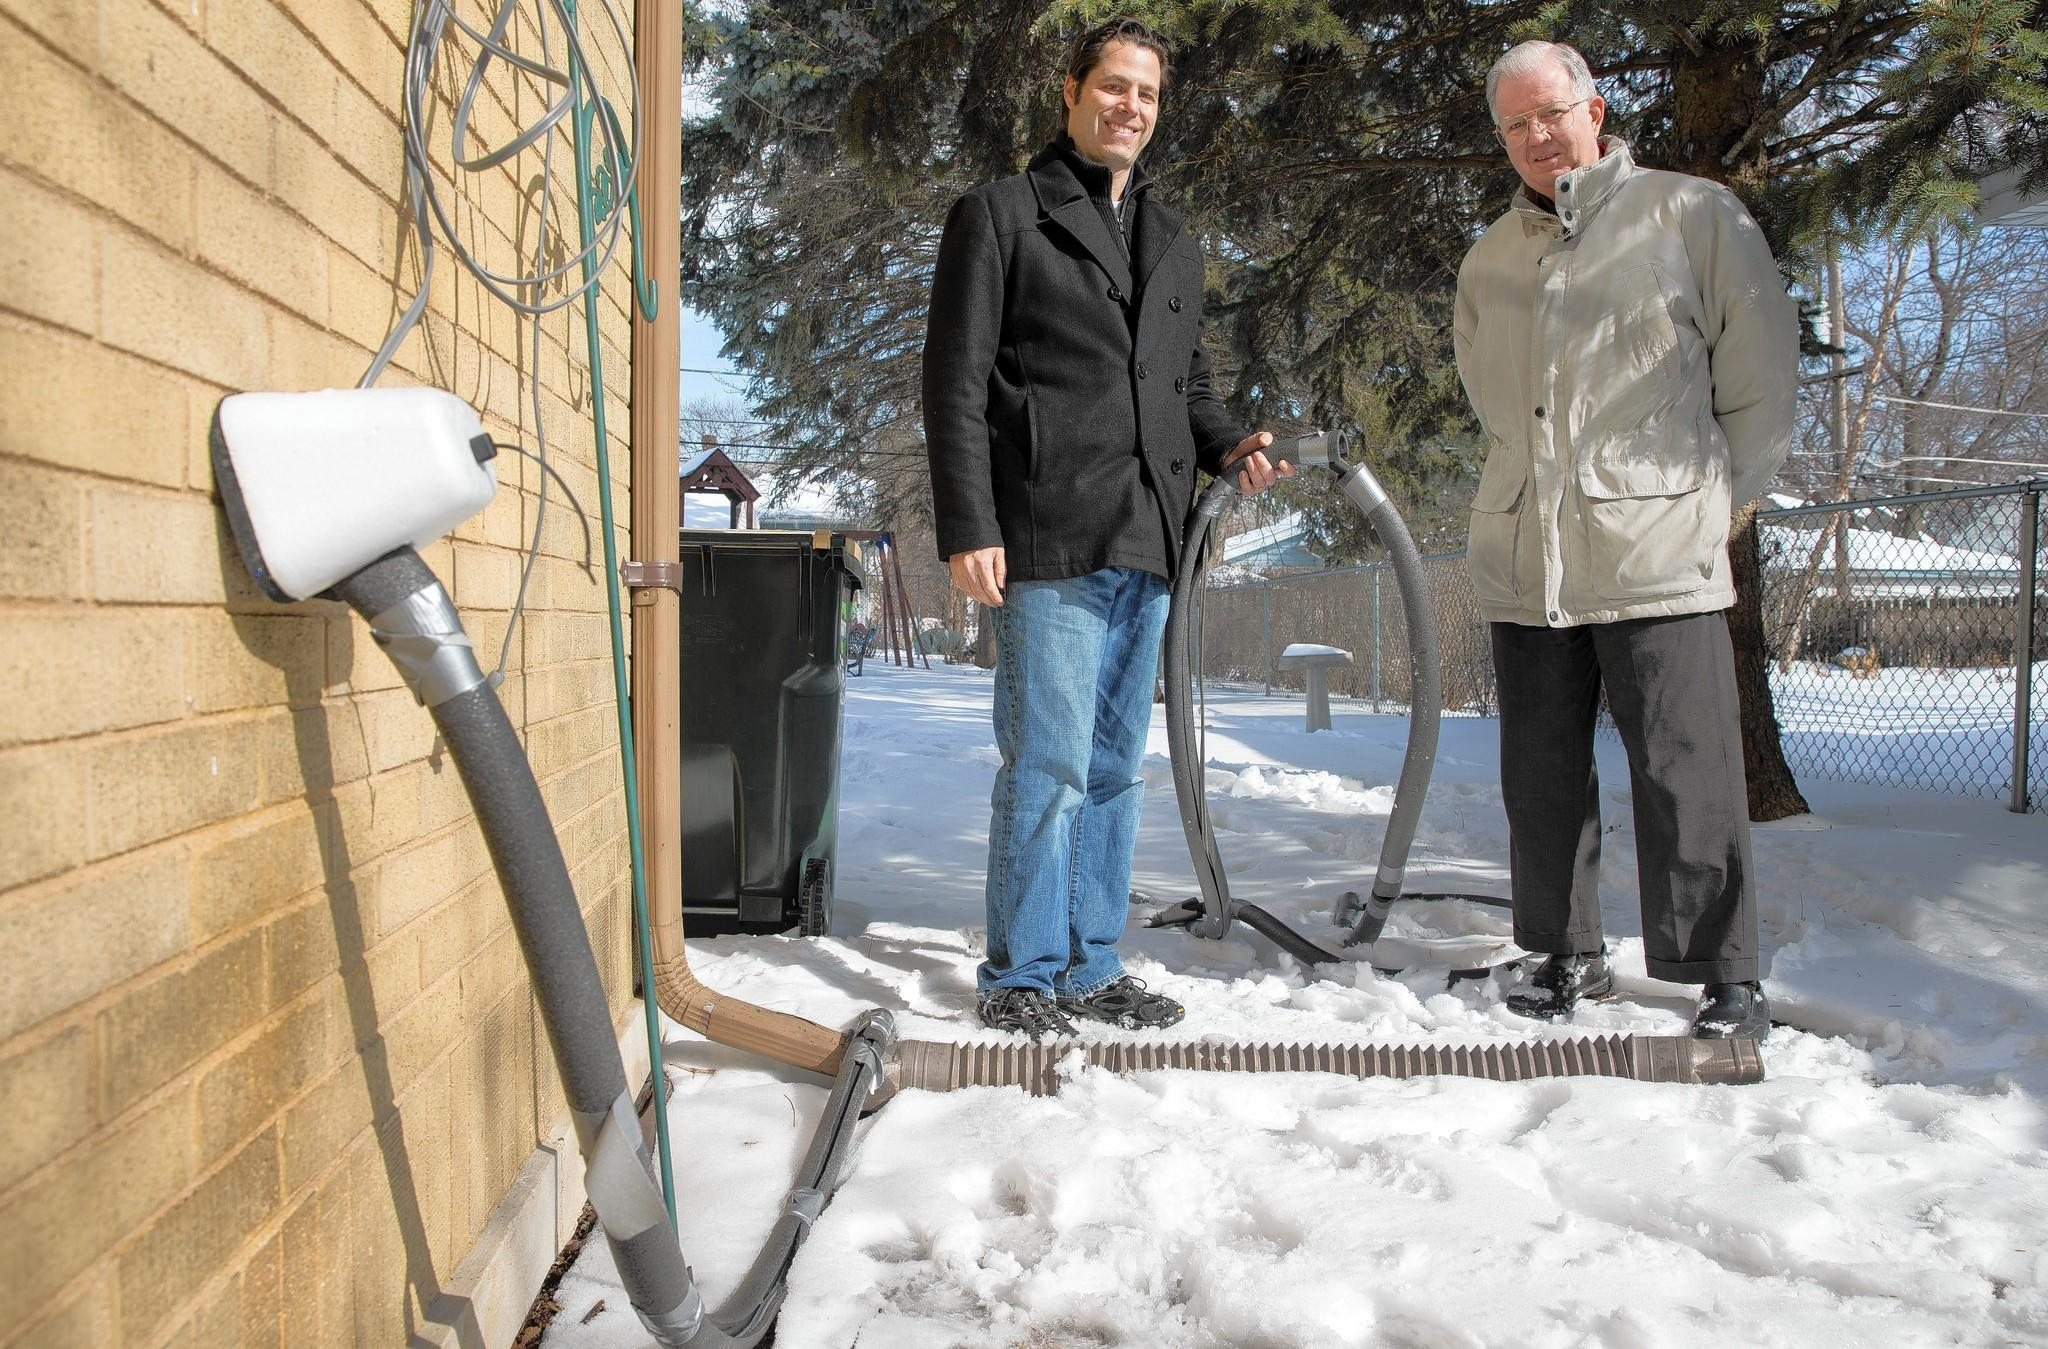 Arlington Heights neighbors Harlan Heiber, left, and Fred Dix show the hose that supplies water to Heiber's house, left, from Dix's home next door. The hose, wrapped in pipe insulation and electrical heating cords, has been pressed into service ever since a water line froze at the end of January.